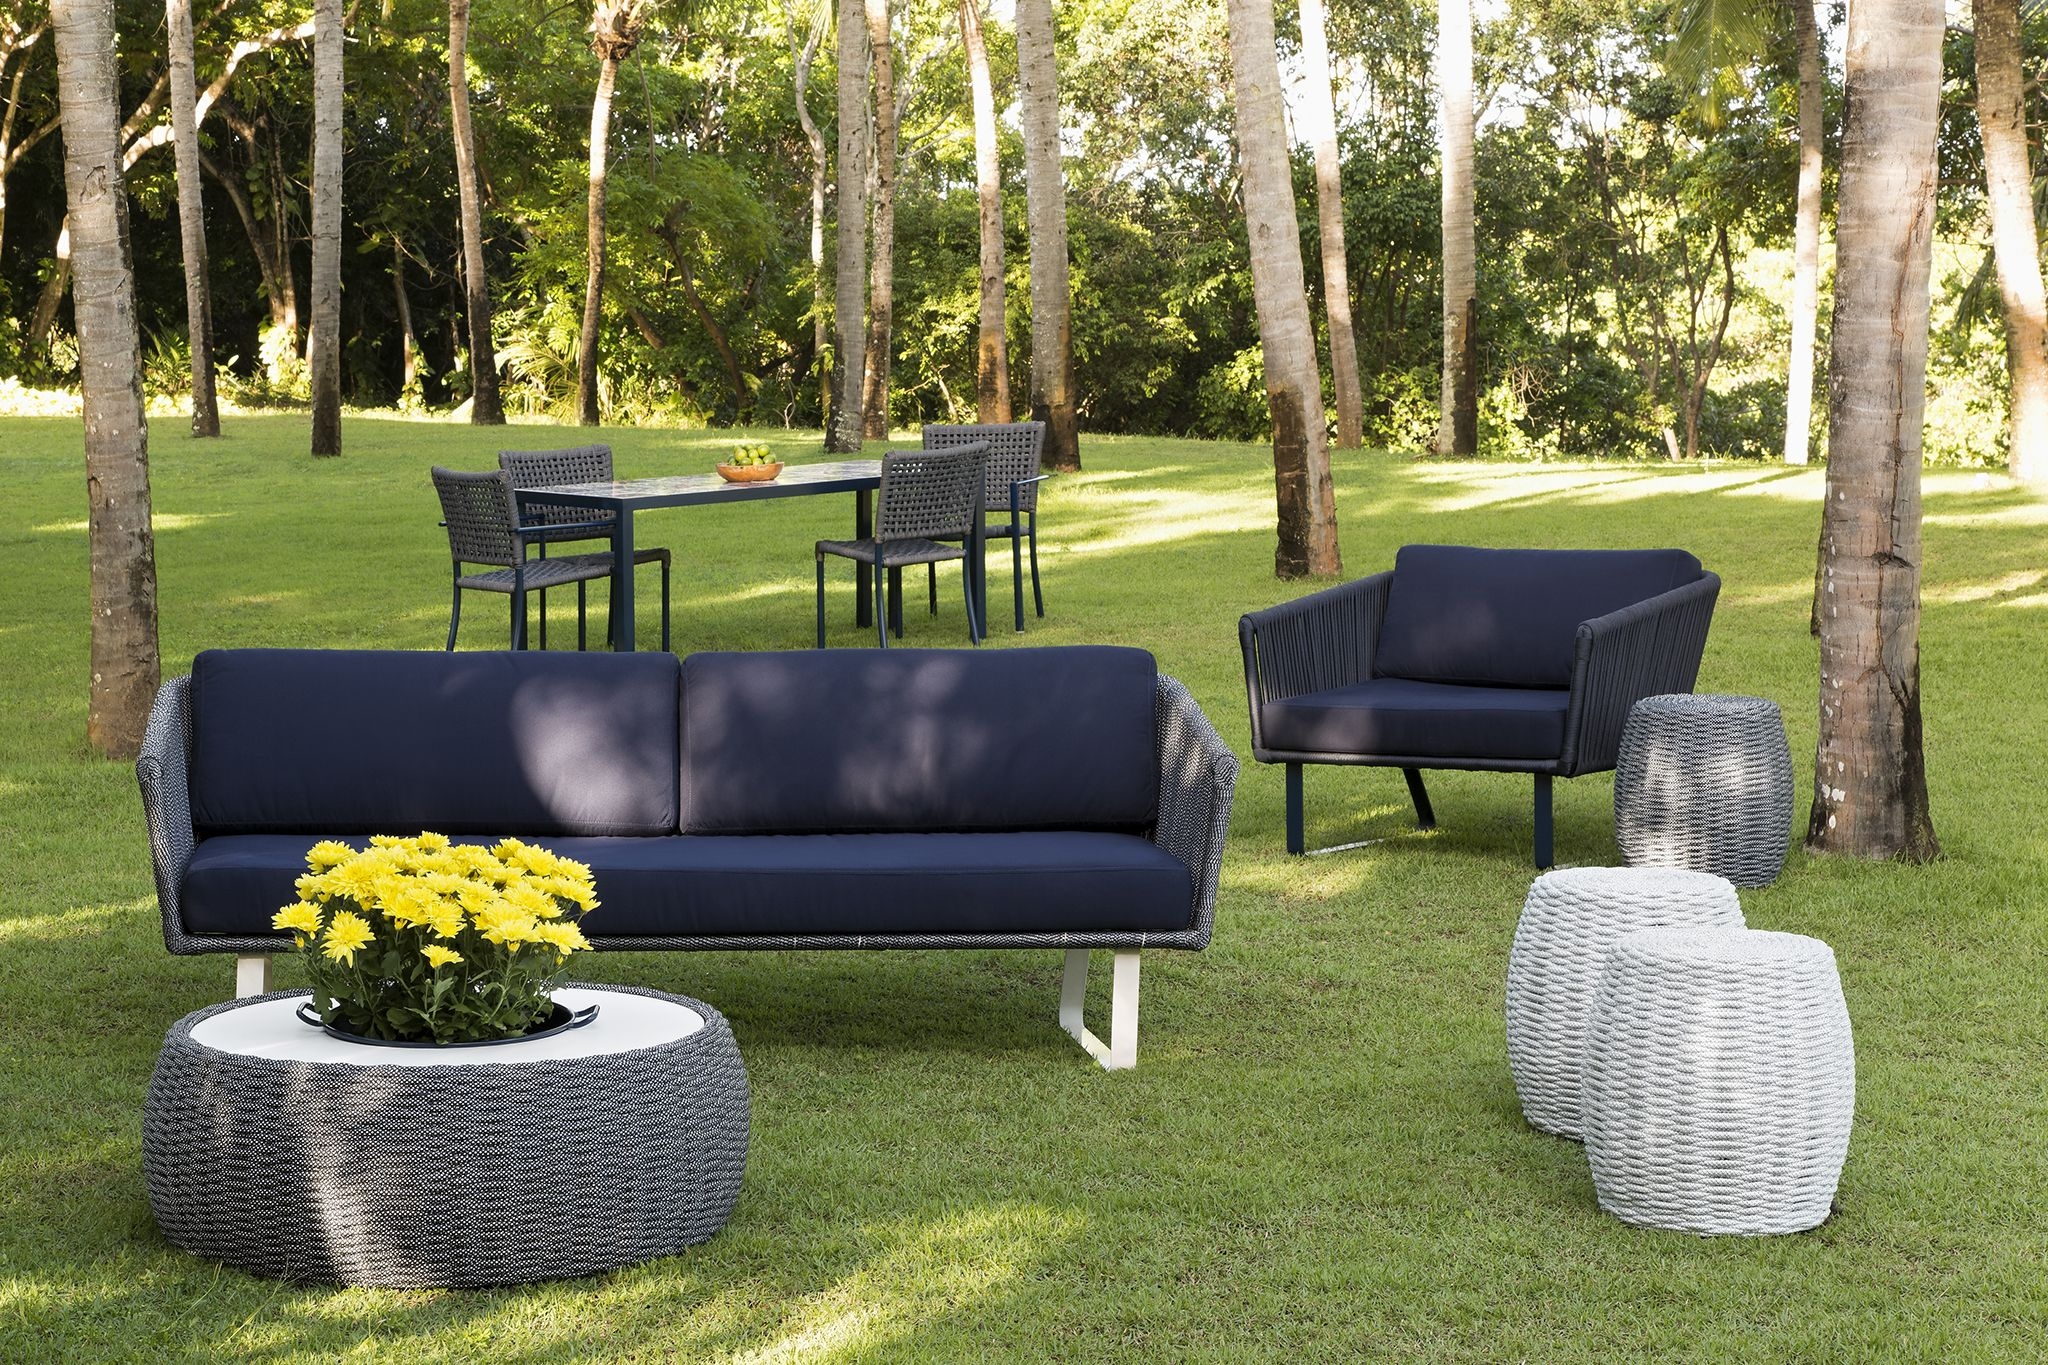 Tidelli Outdoor Living Marina Collection Outdoor furniture